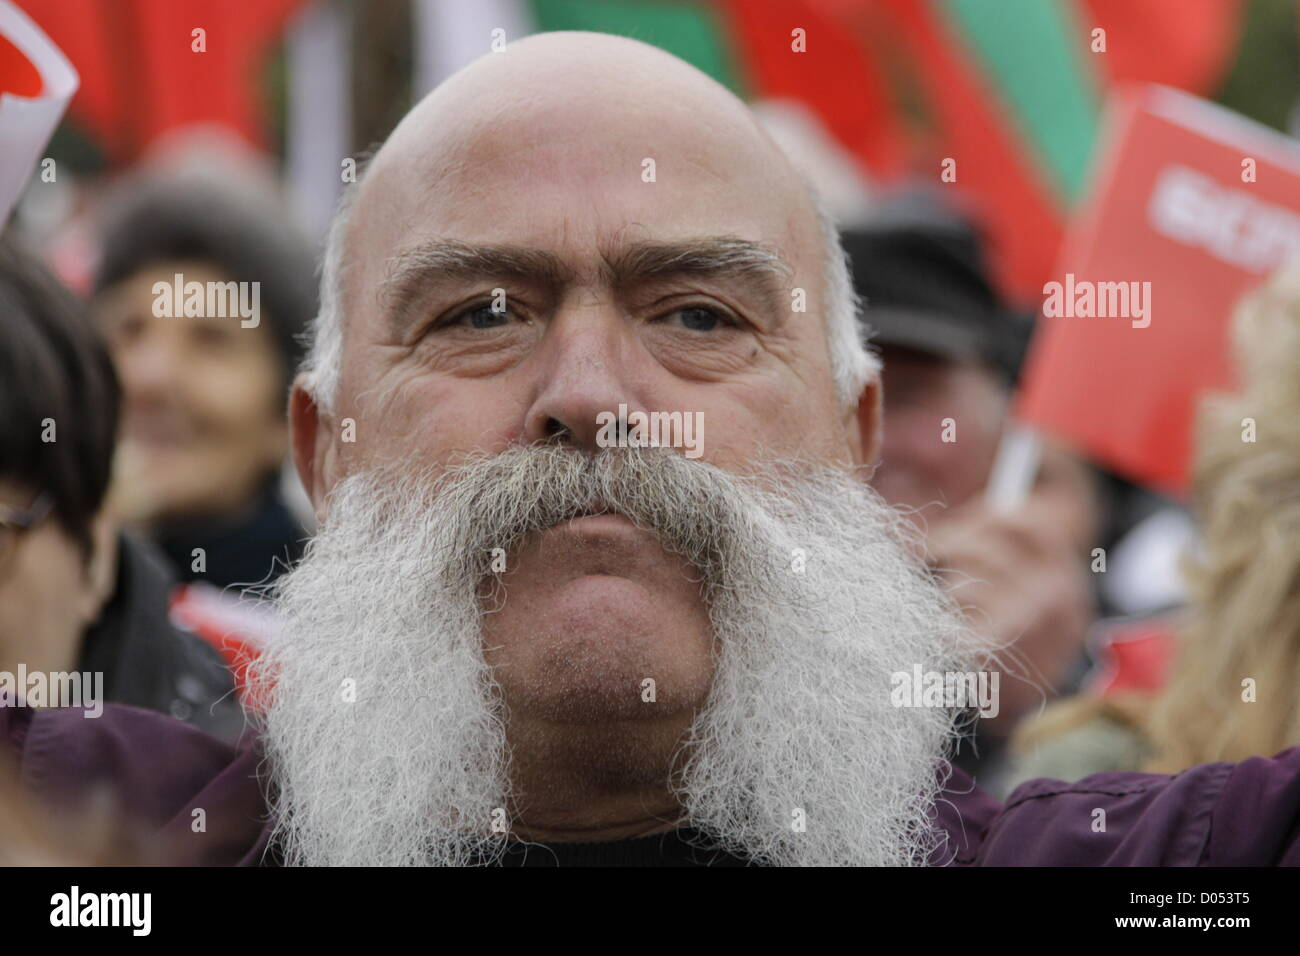 Sofia, Bulgaria. 17th November 2012. Man with big moustache in the crowd of anti-austerity protesters, Socialist - Stock Image